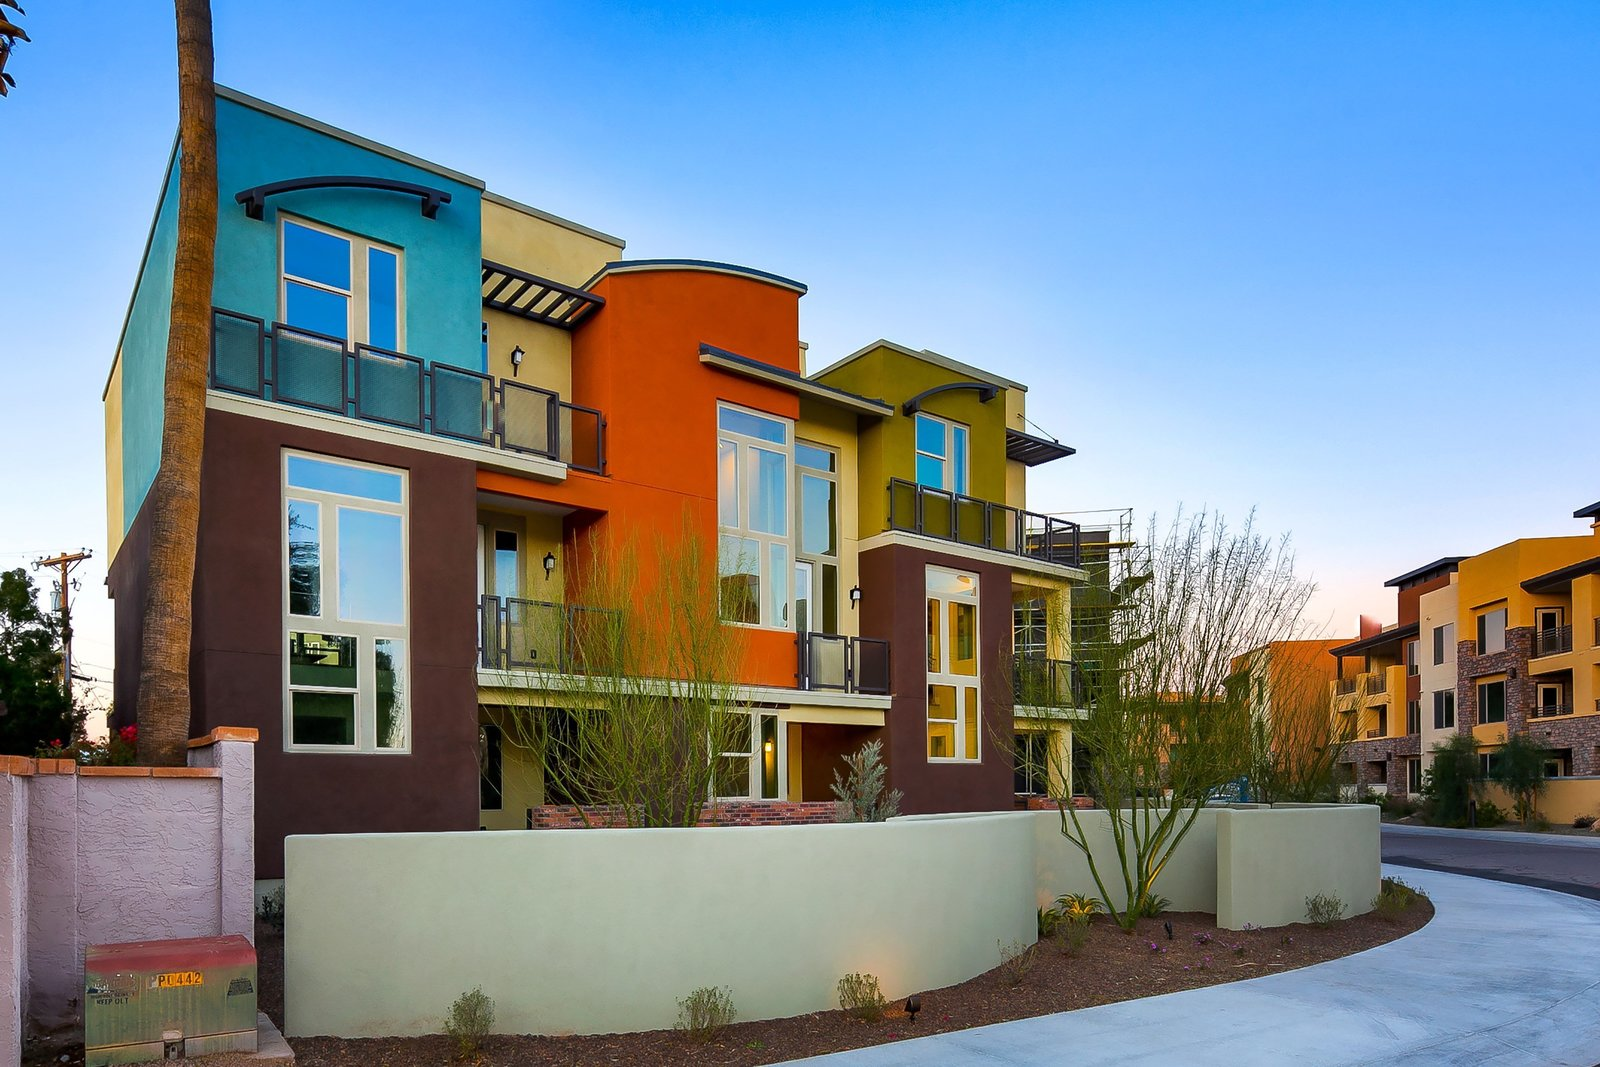 Trio Scottsdale Lofts, Arizona.  Photo 9 of 9 in Architect Ed Binkley on Contemporary Home Design  and the 'New Modern'